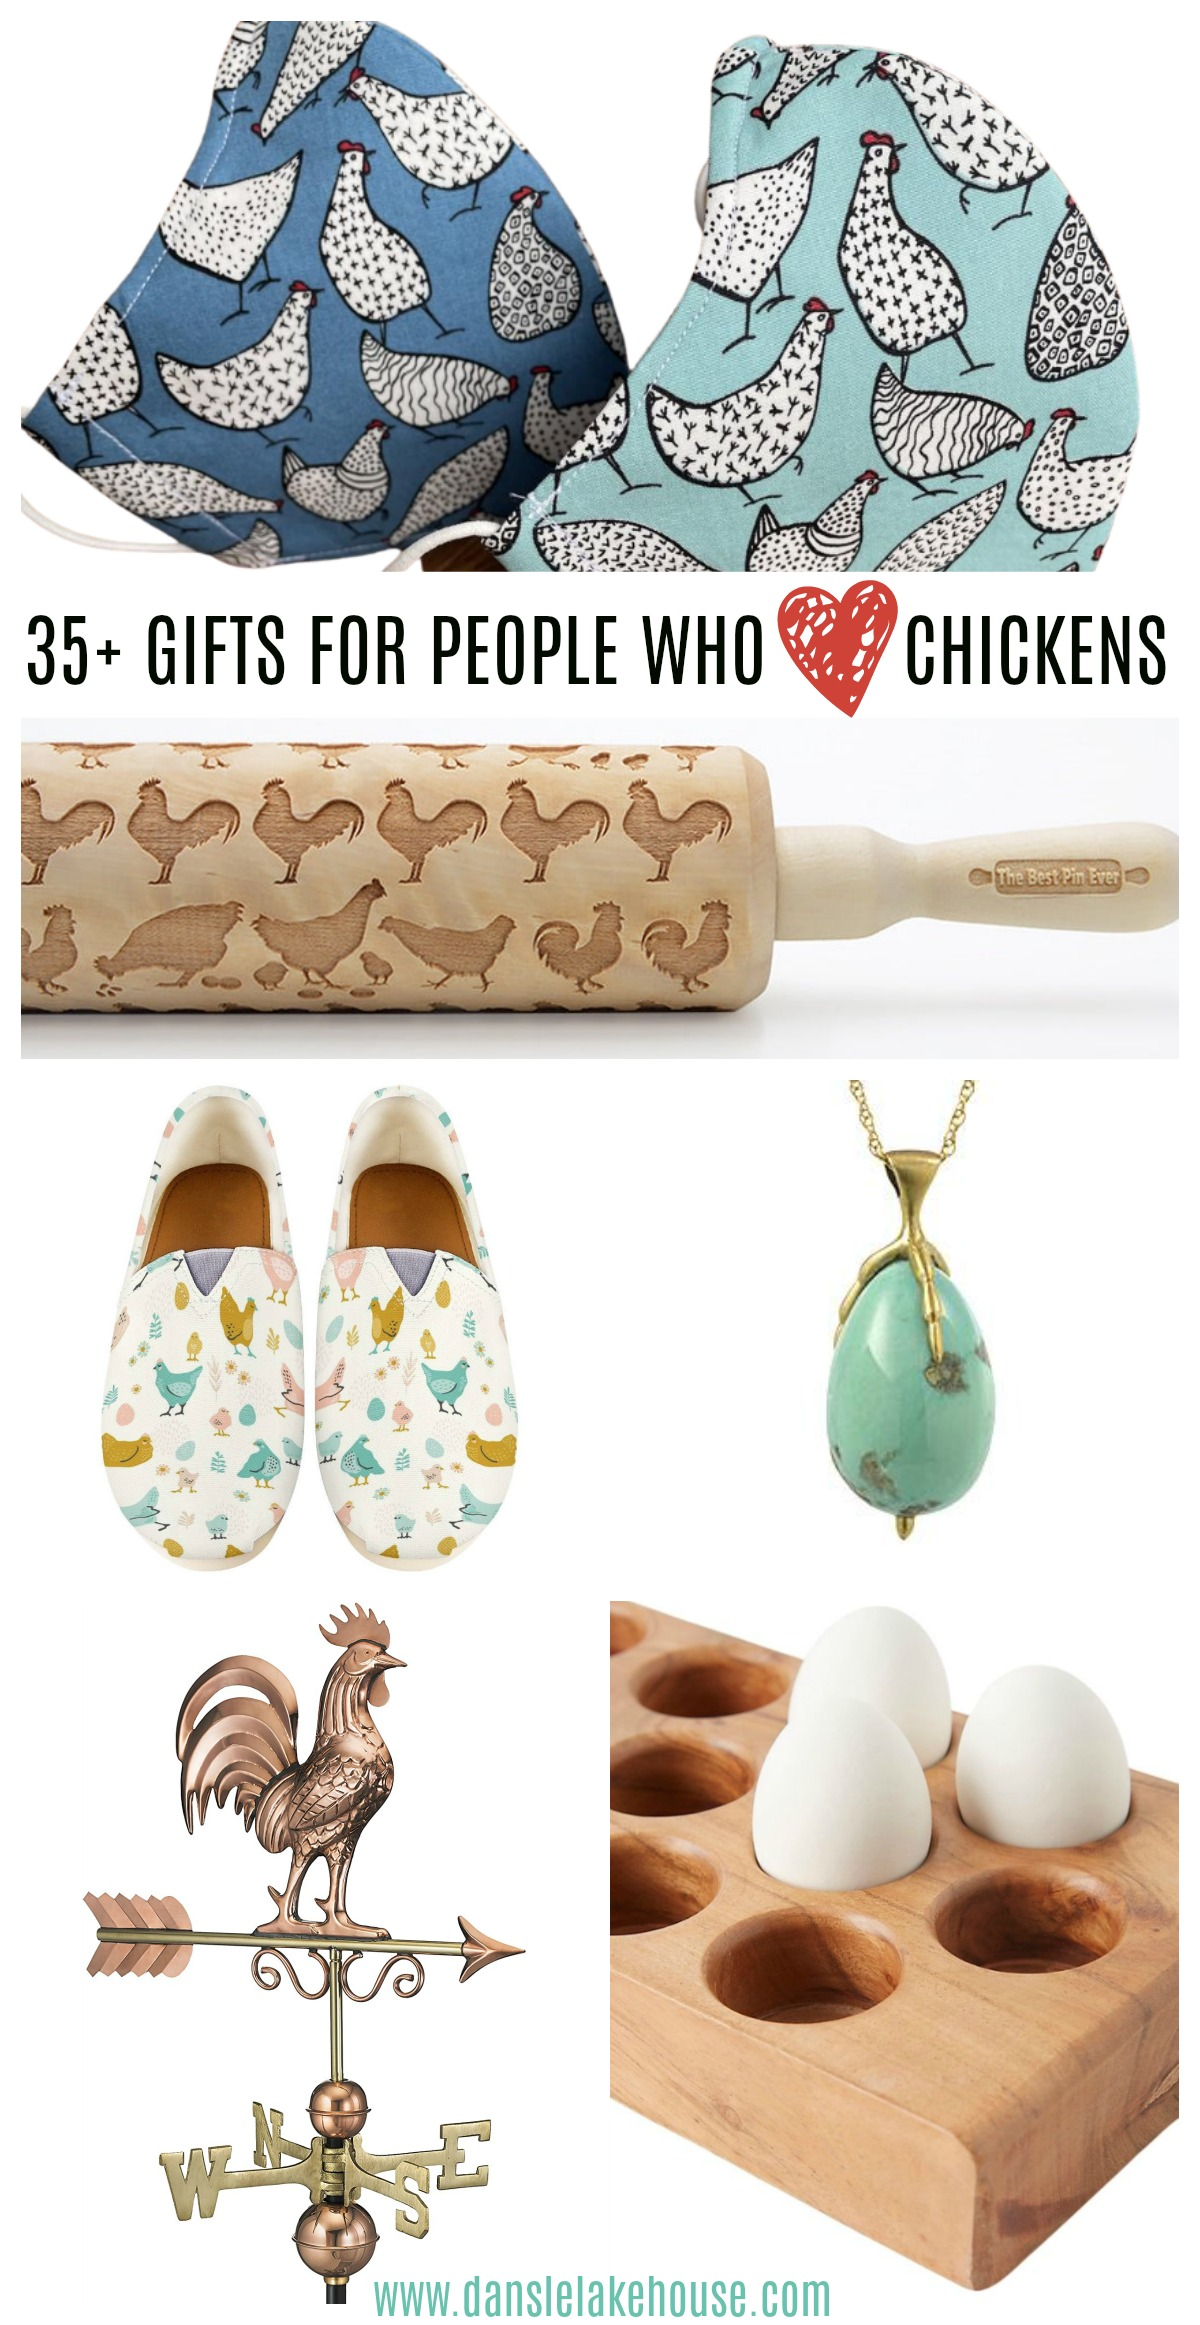 Gift Guide for Backyard Chicken Keepers